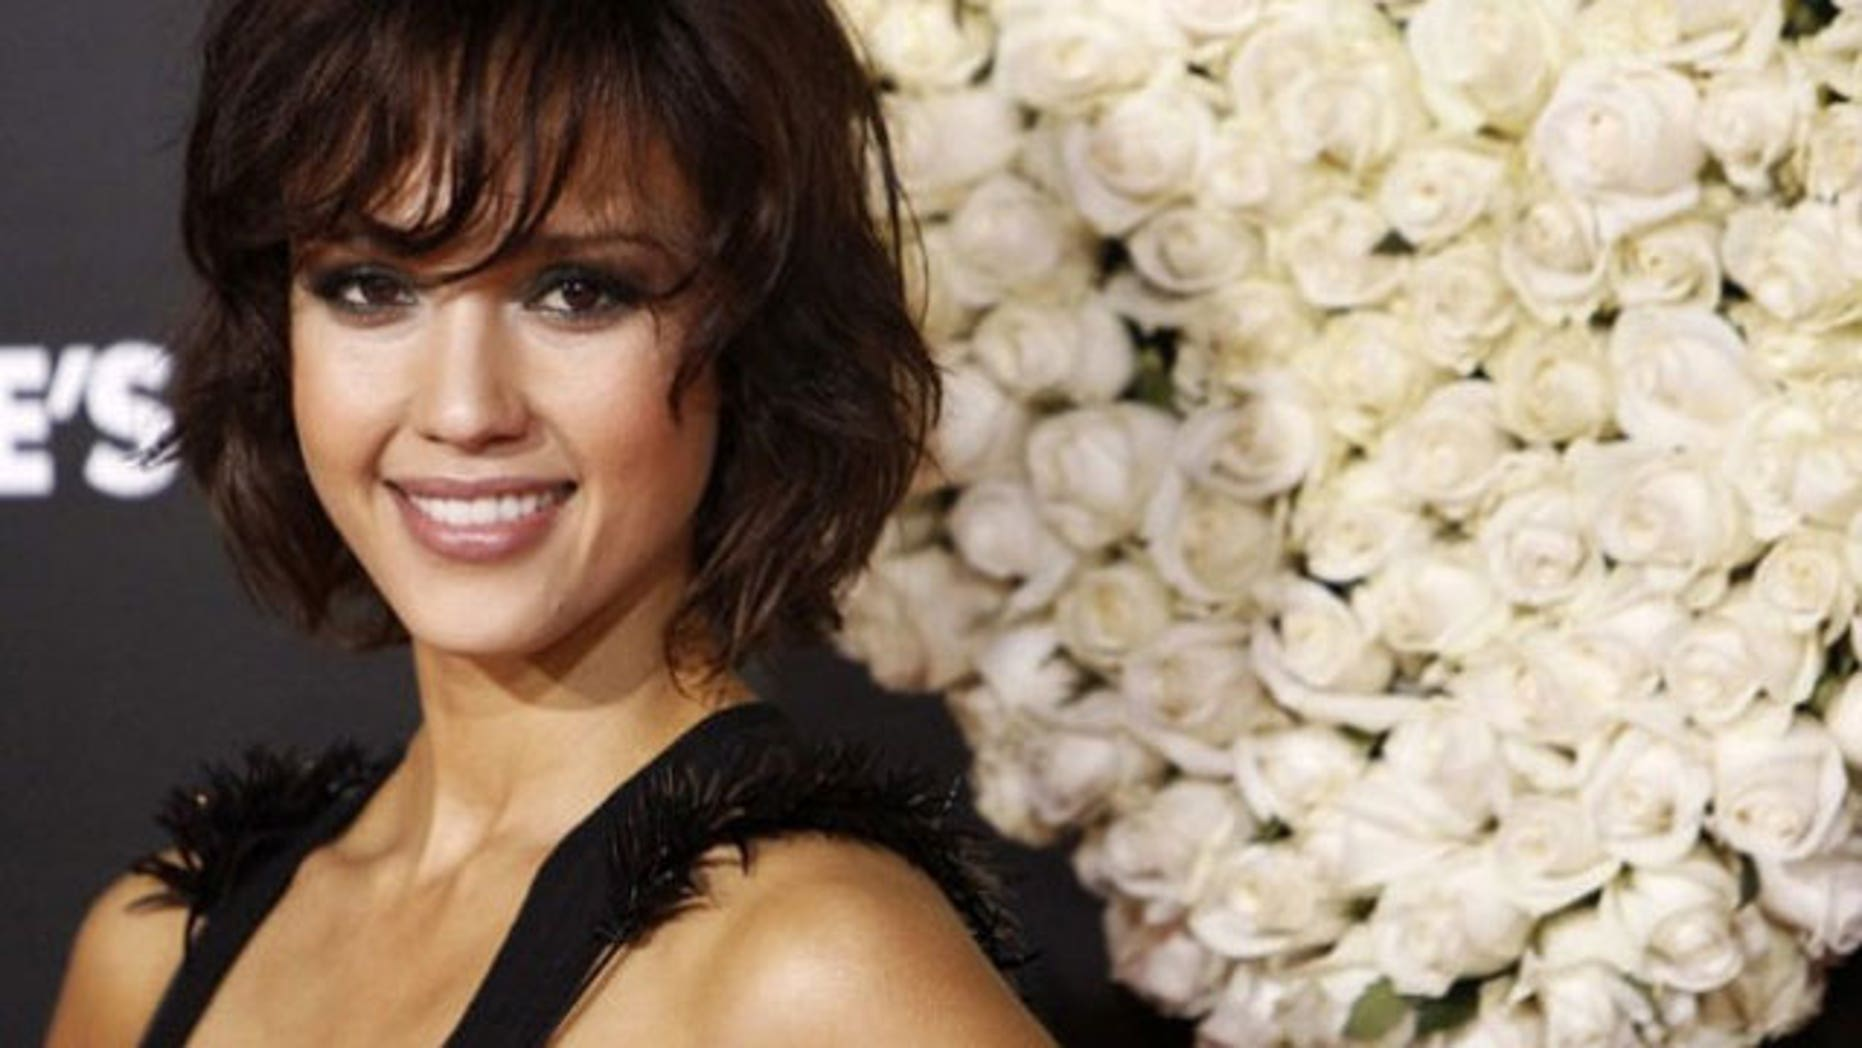 Jessica Alba wants to do more roles her young daughter can see.